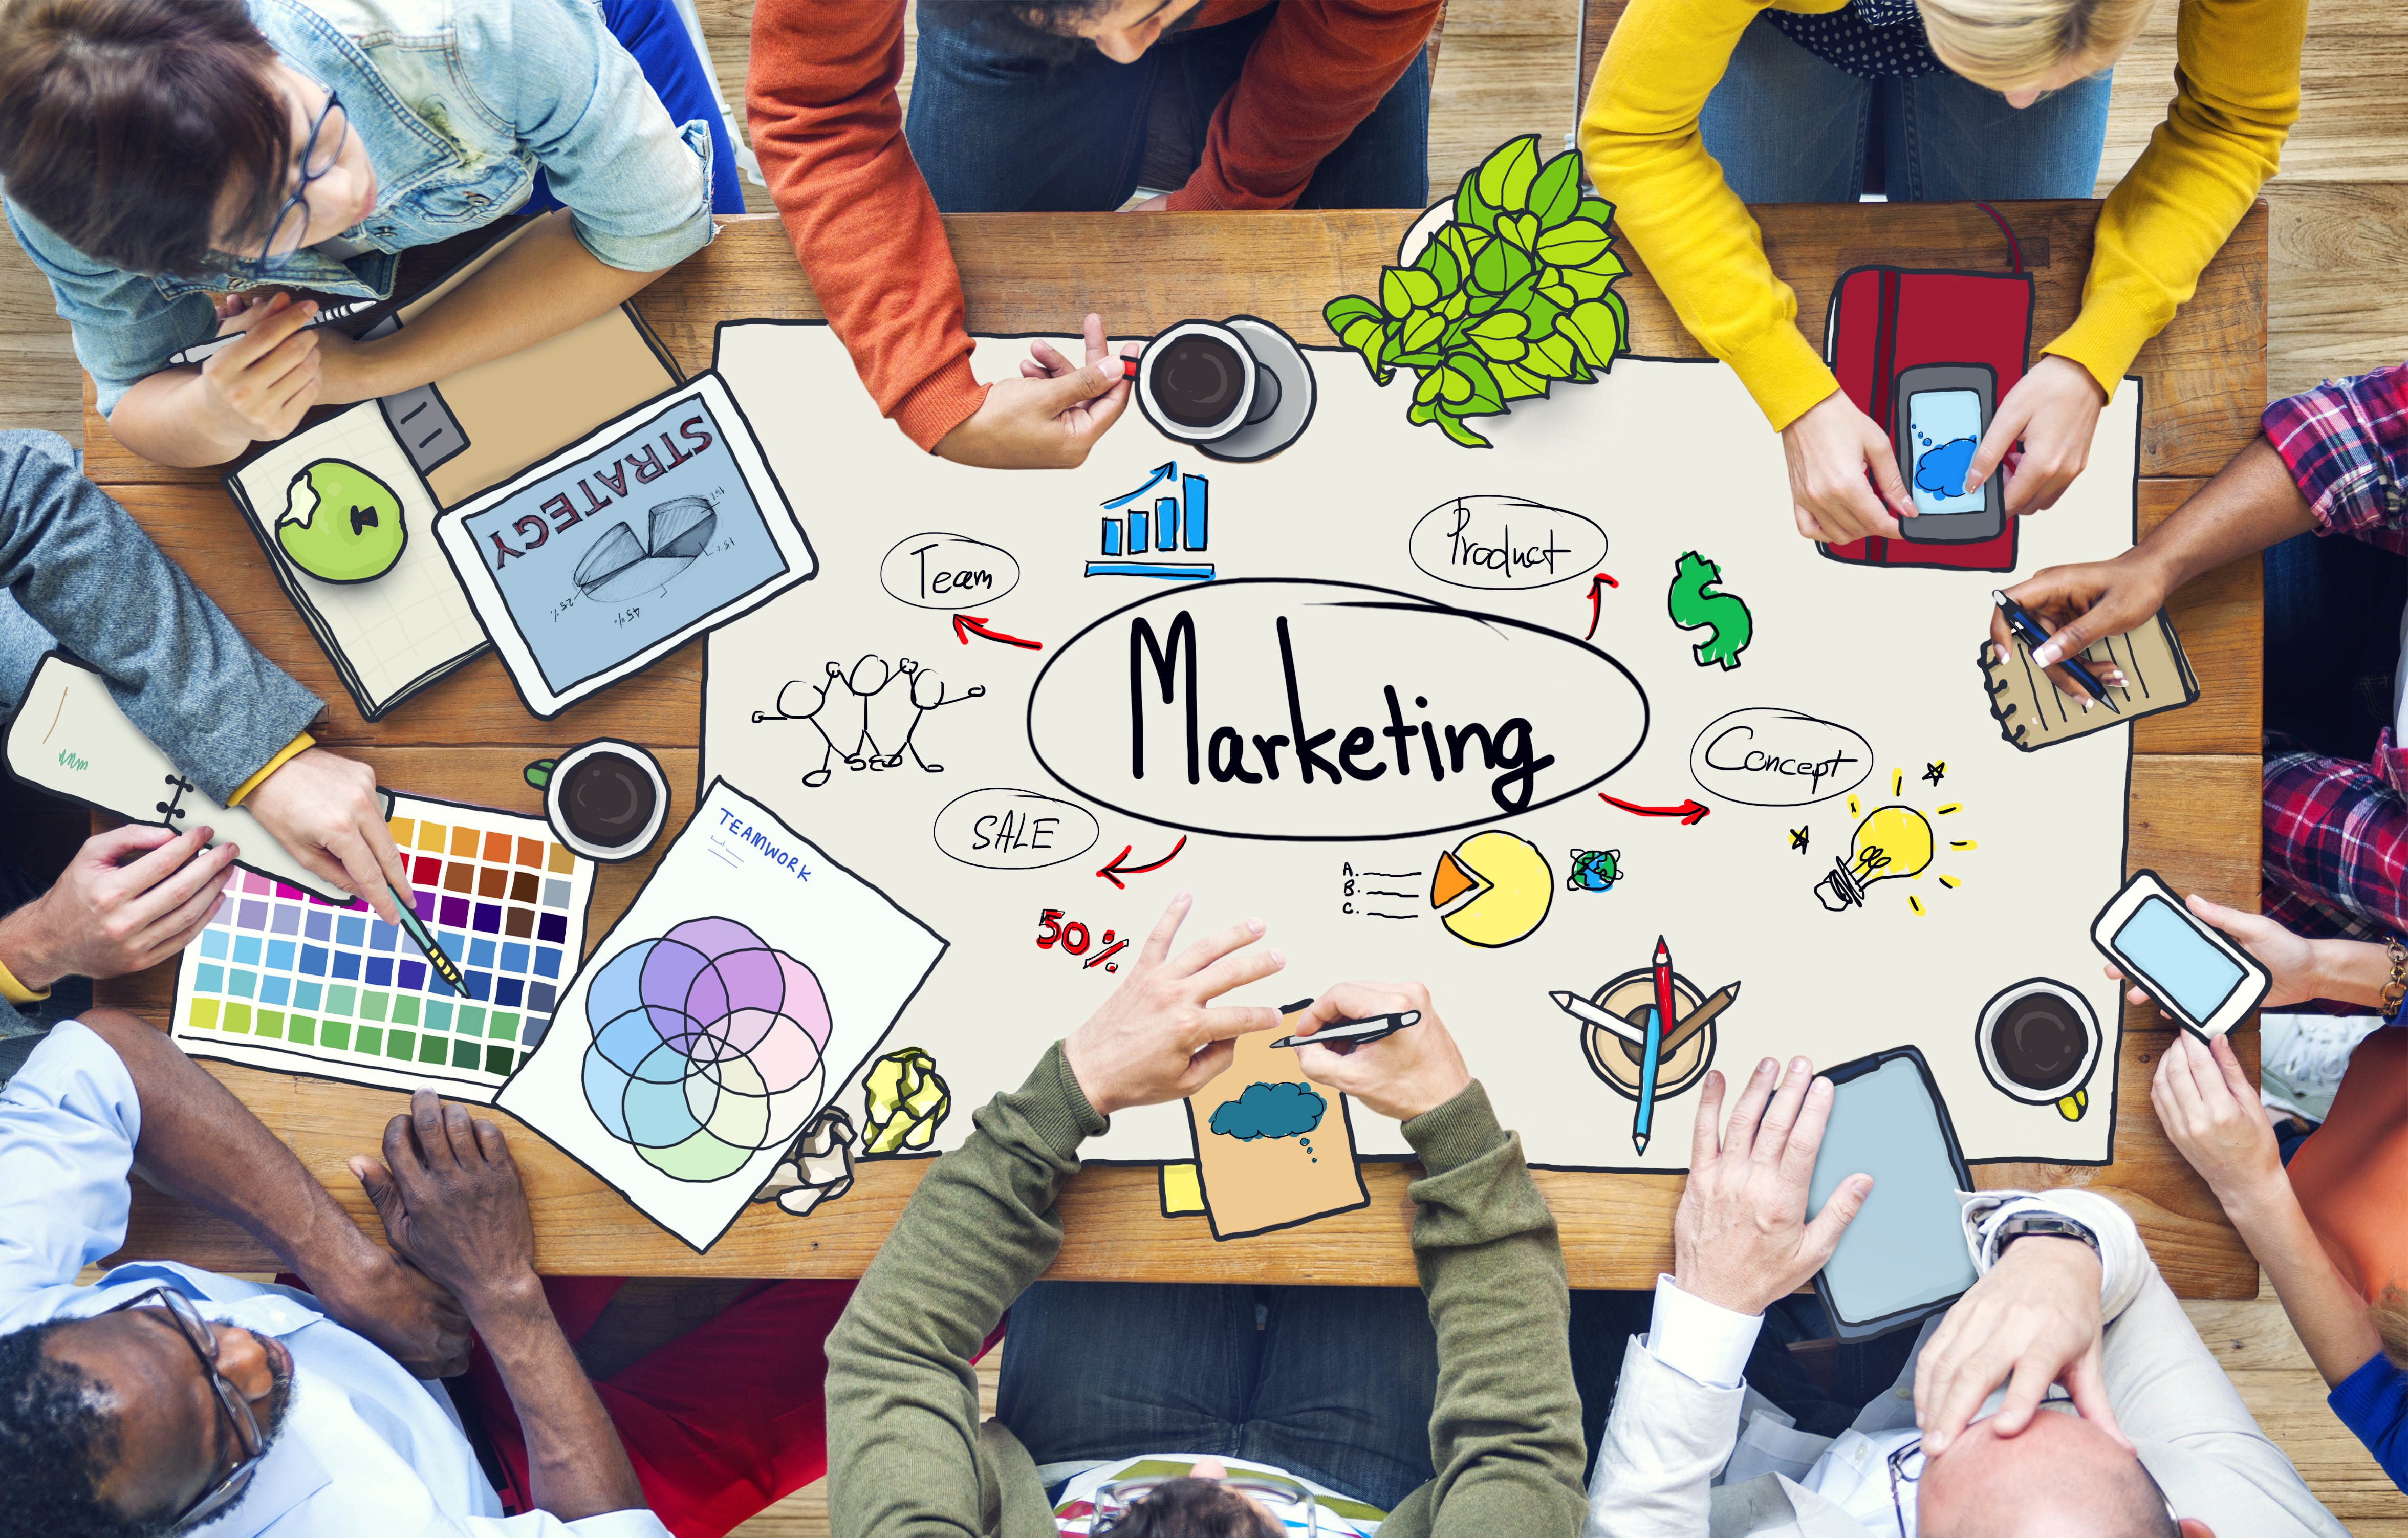 Top 5 Marketing Ideas for Small Businesses